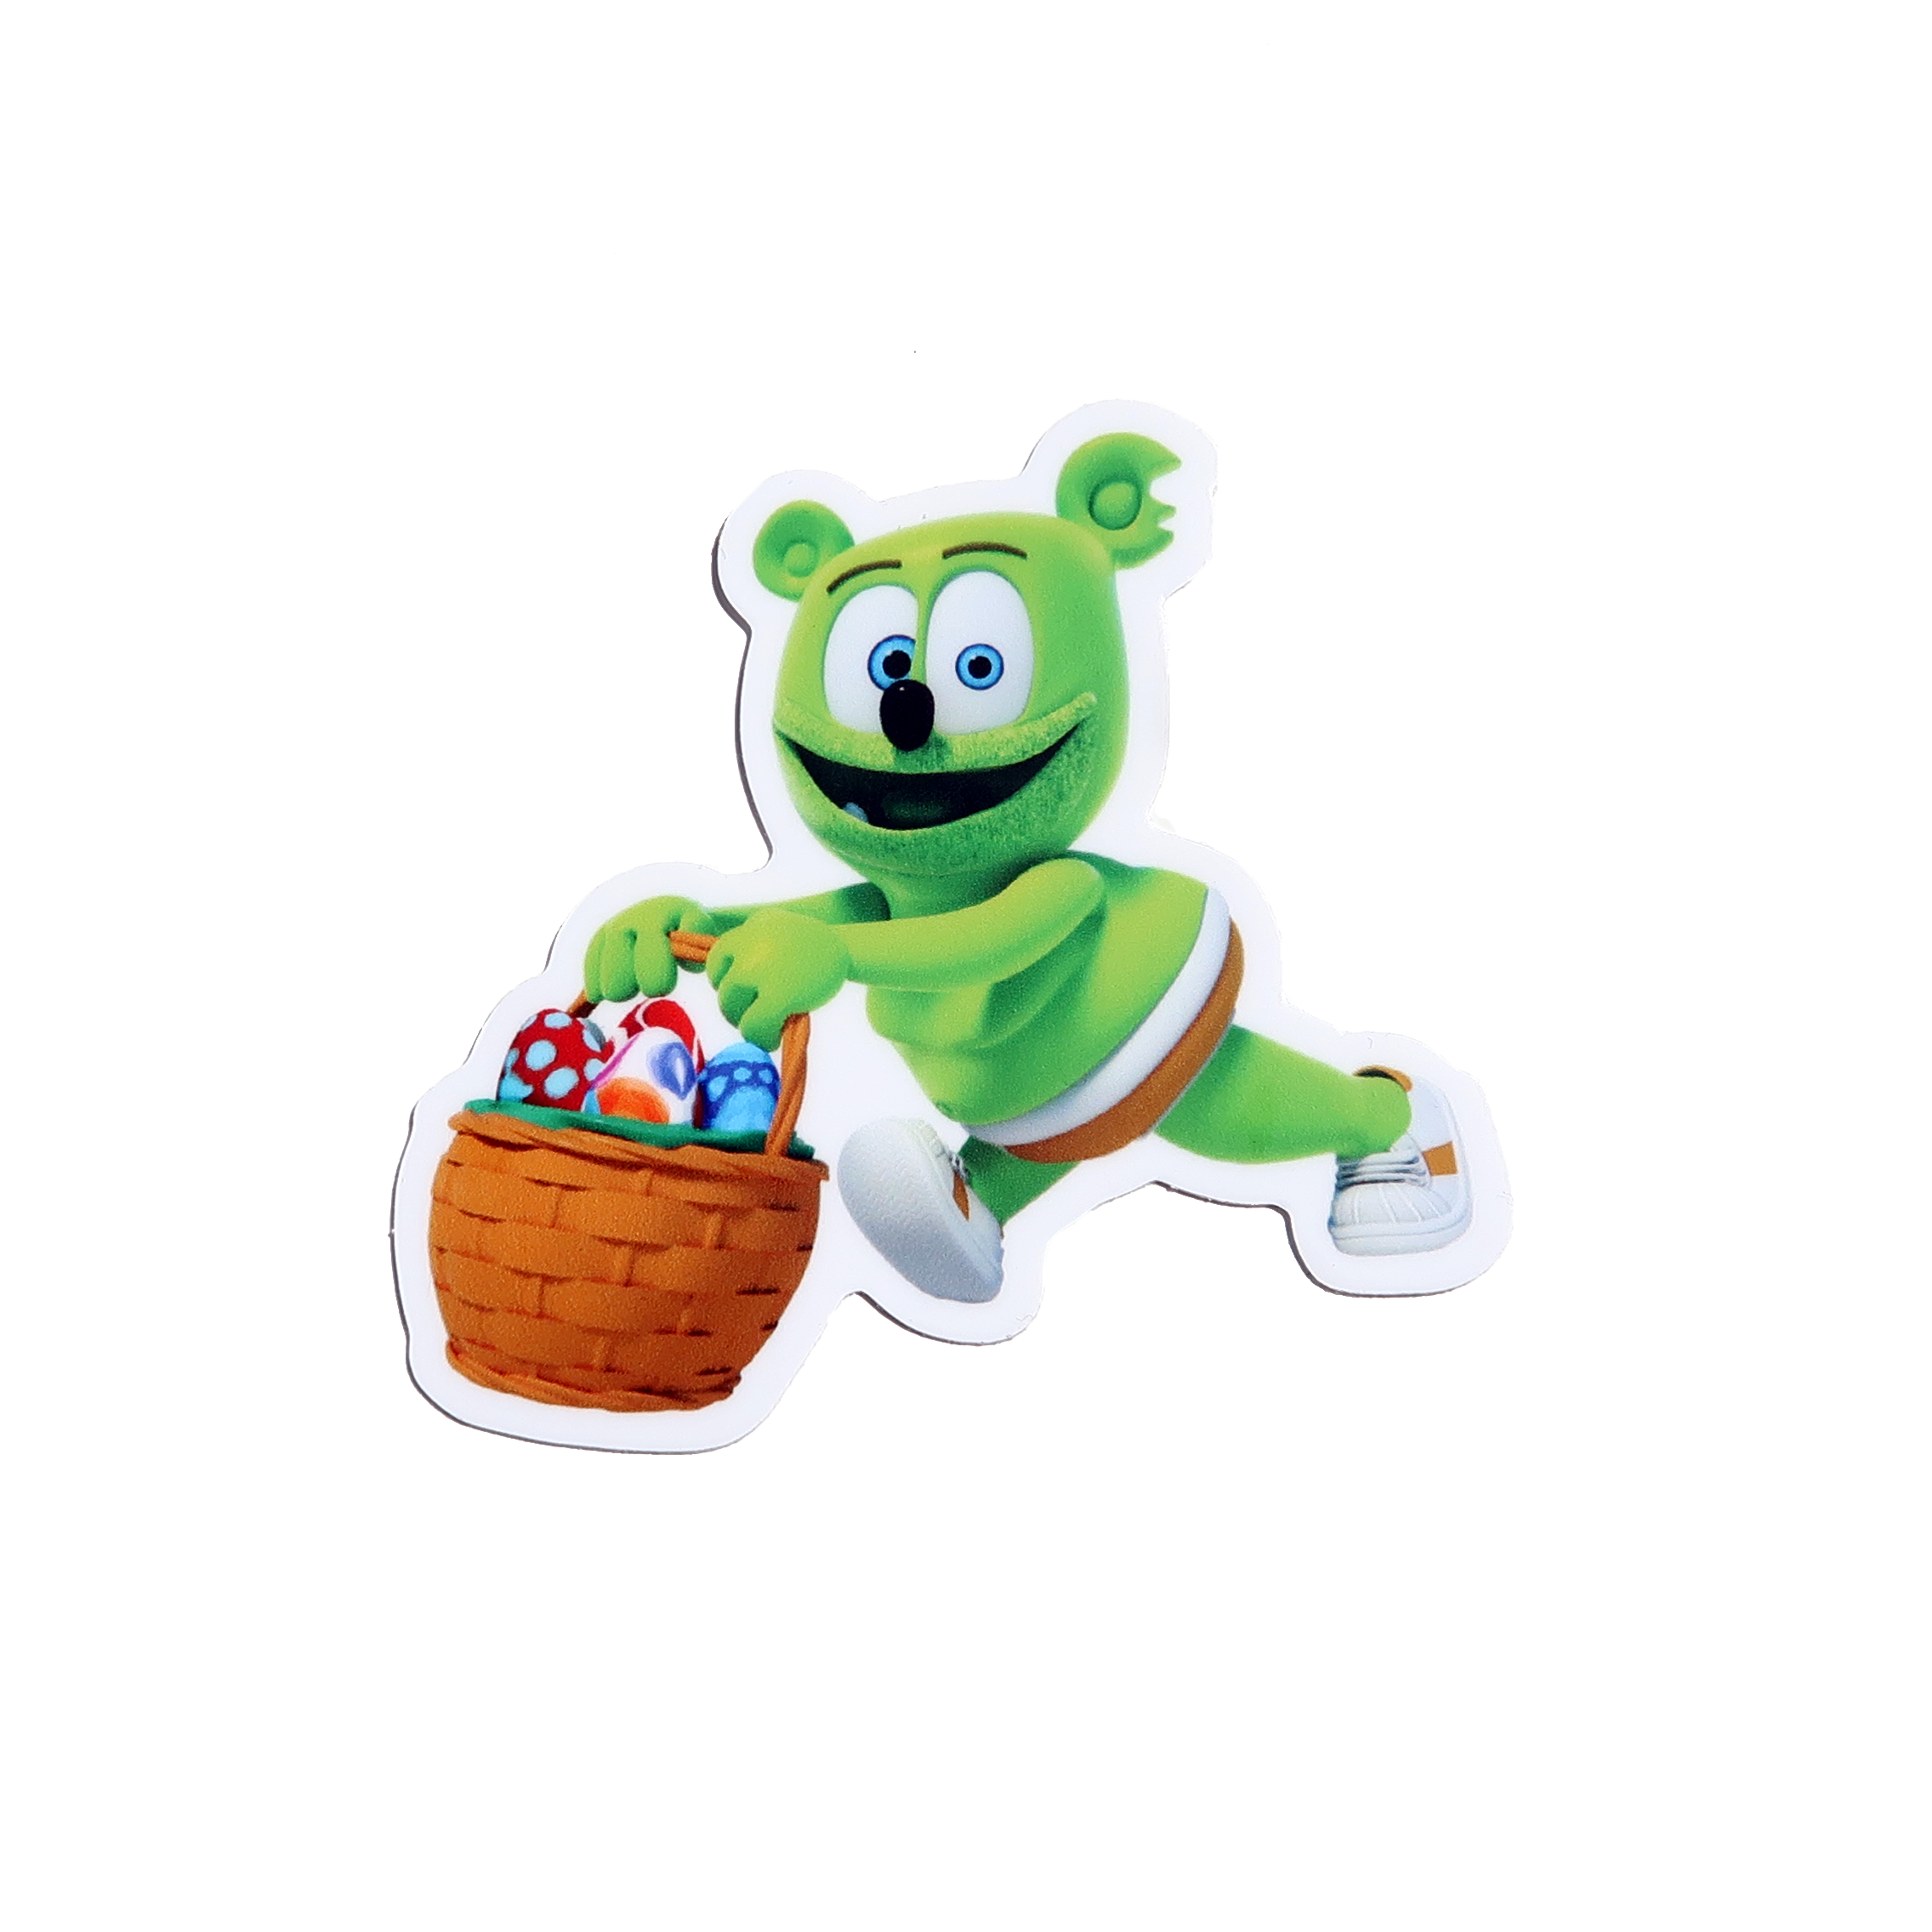 "Gummibär (The Gummy Bear) Easter Basket 3"" Vinyl Sticker"